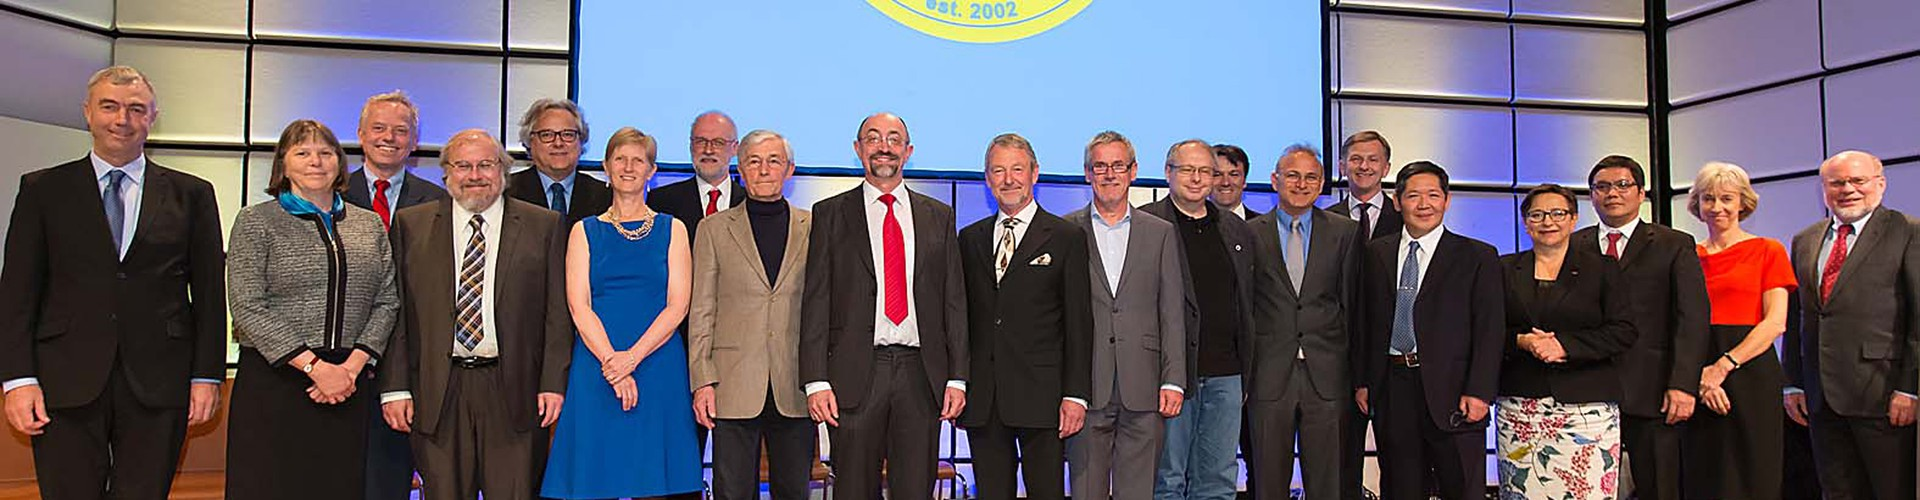 A few of last year's awardees with the EGU President and Vice-President at the EGU 2015 Awards Ceremony. (Credit: EGU/Foto Pfluegl)